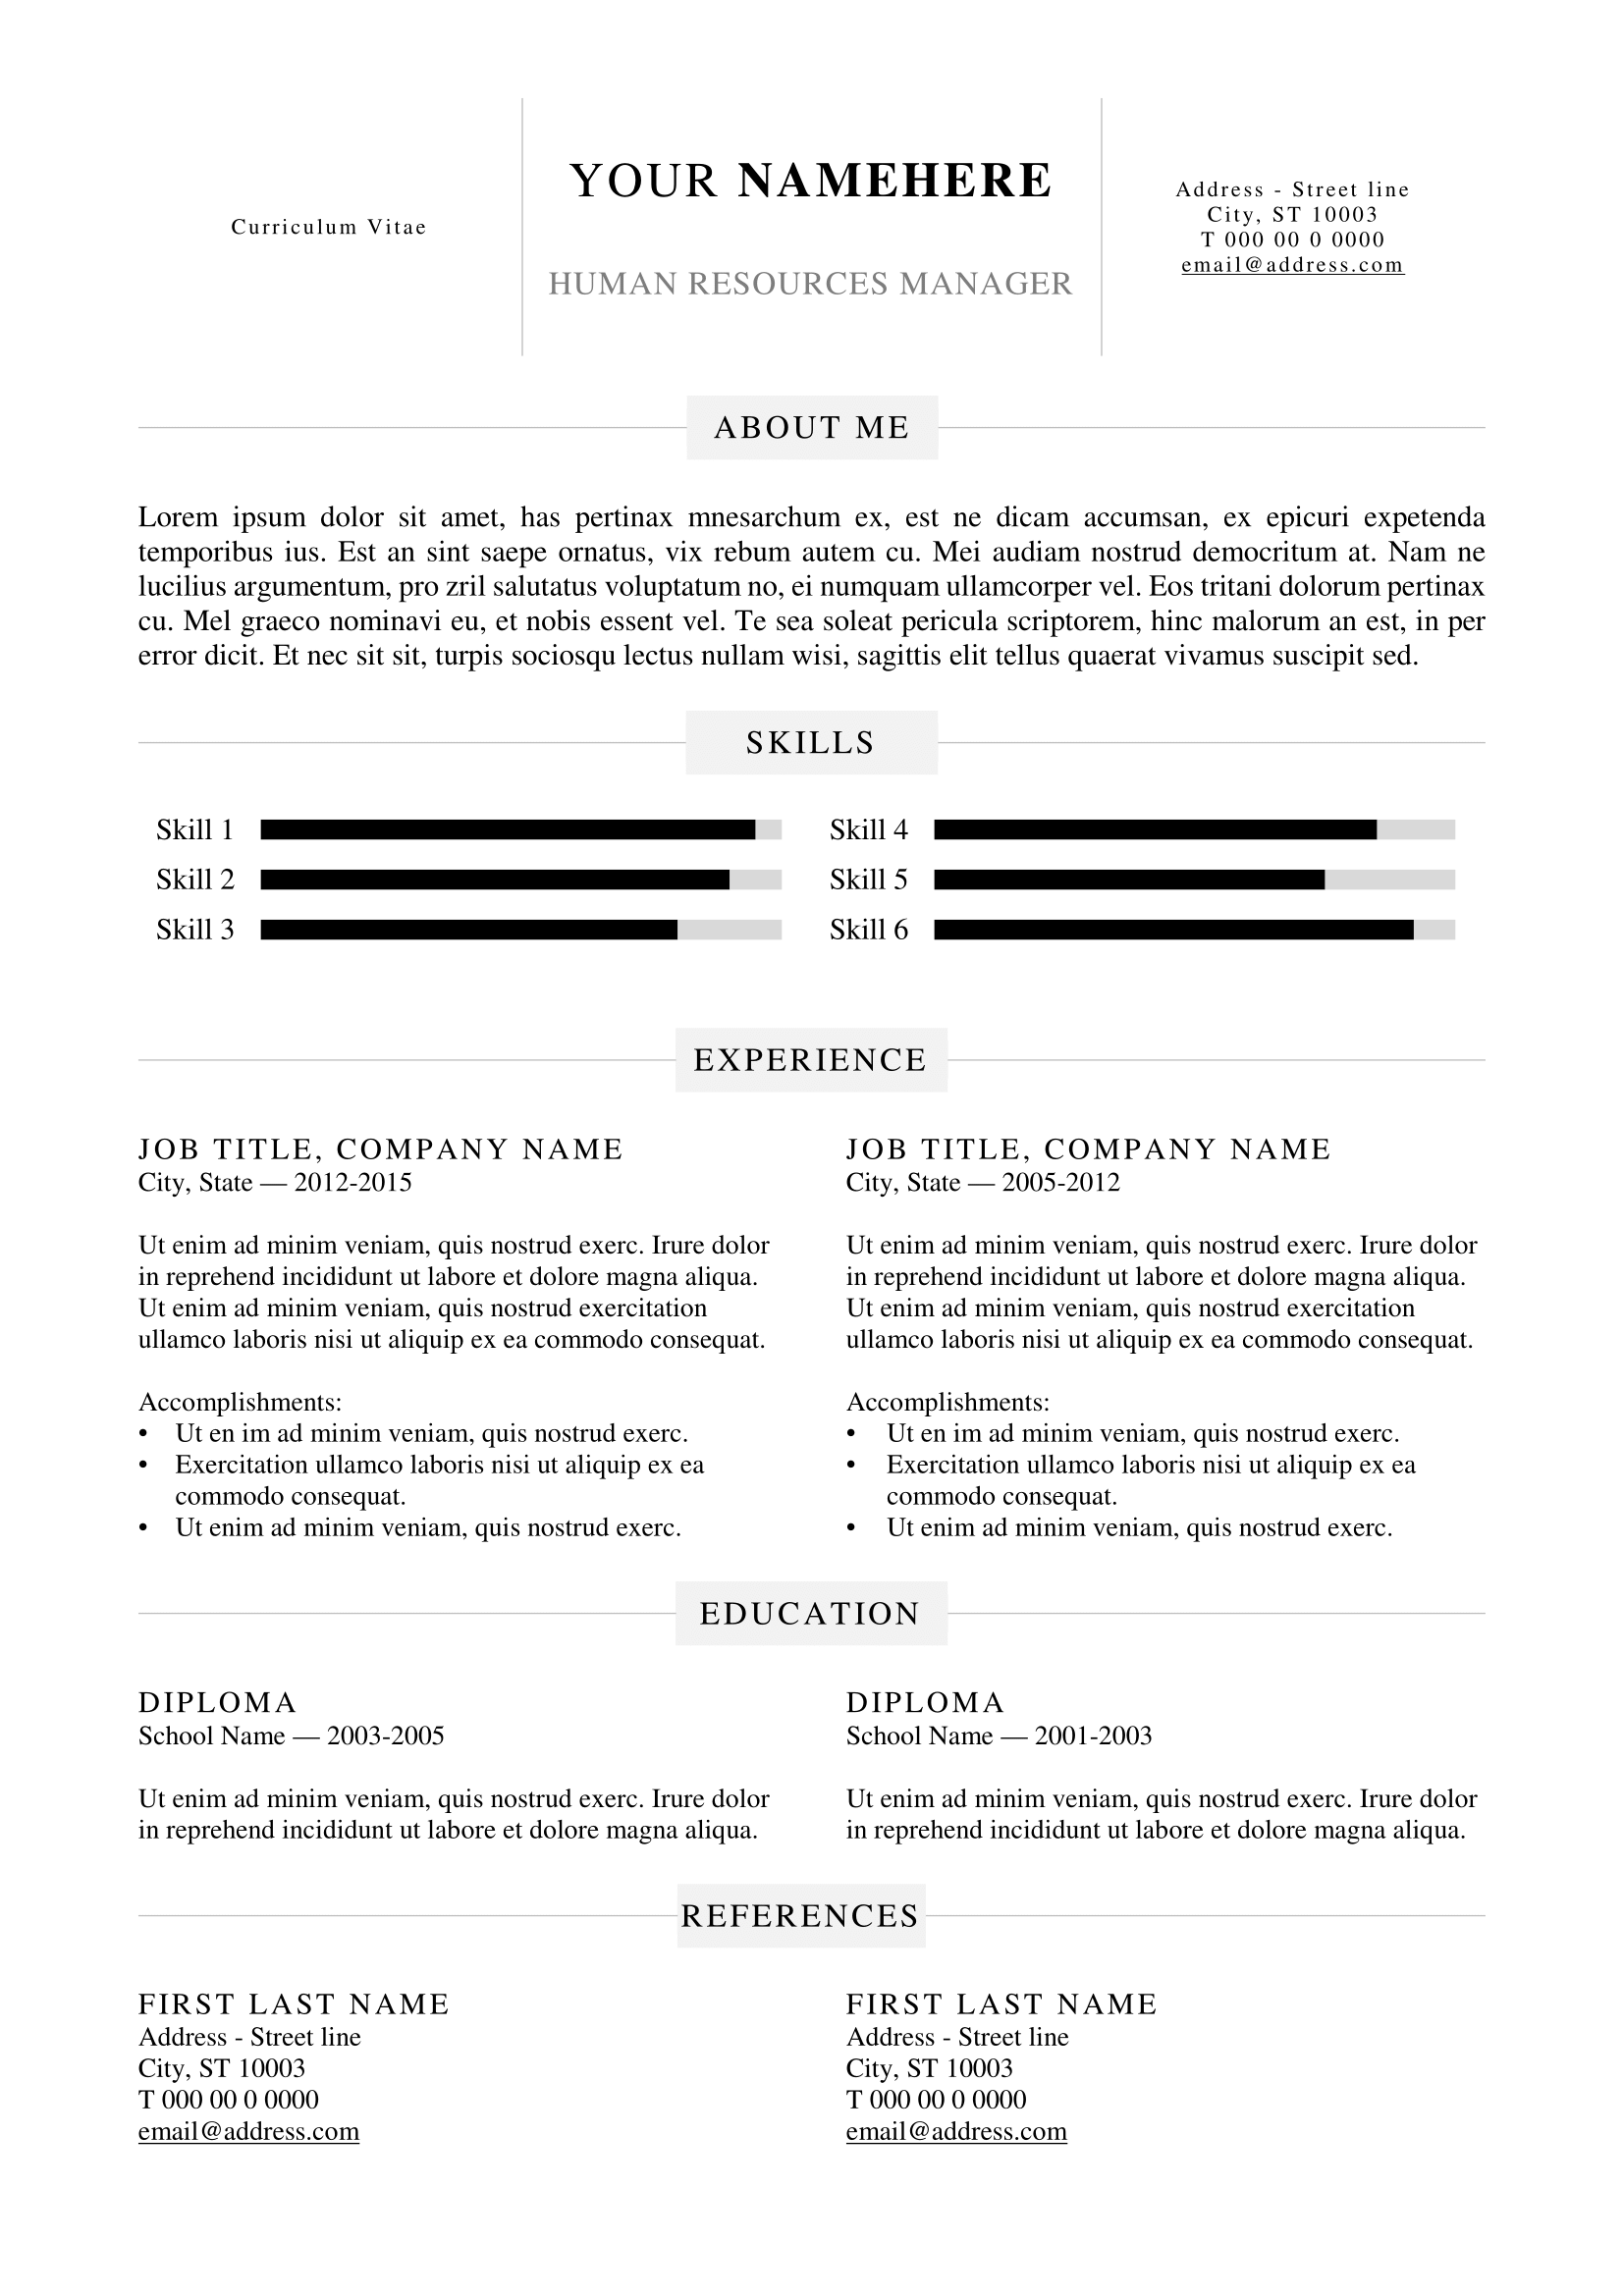 resume templates upload